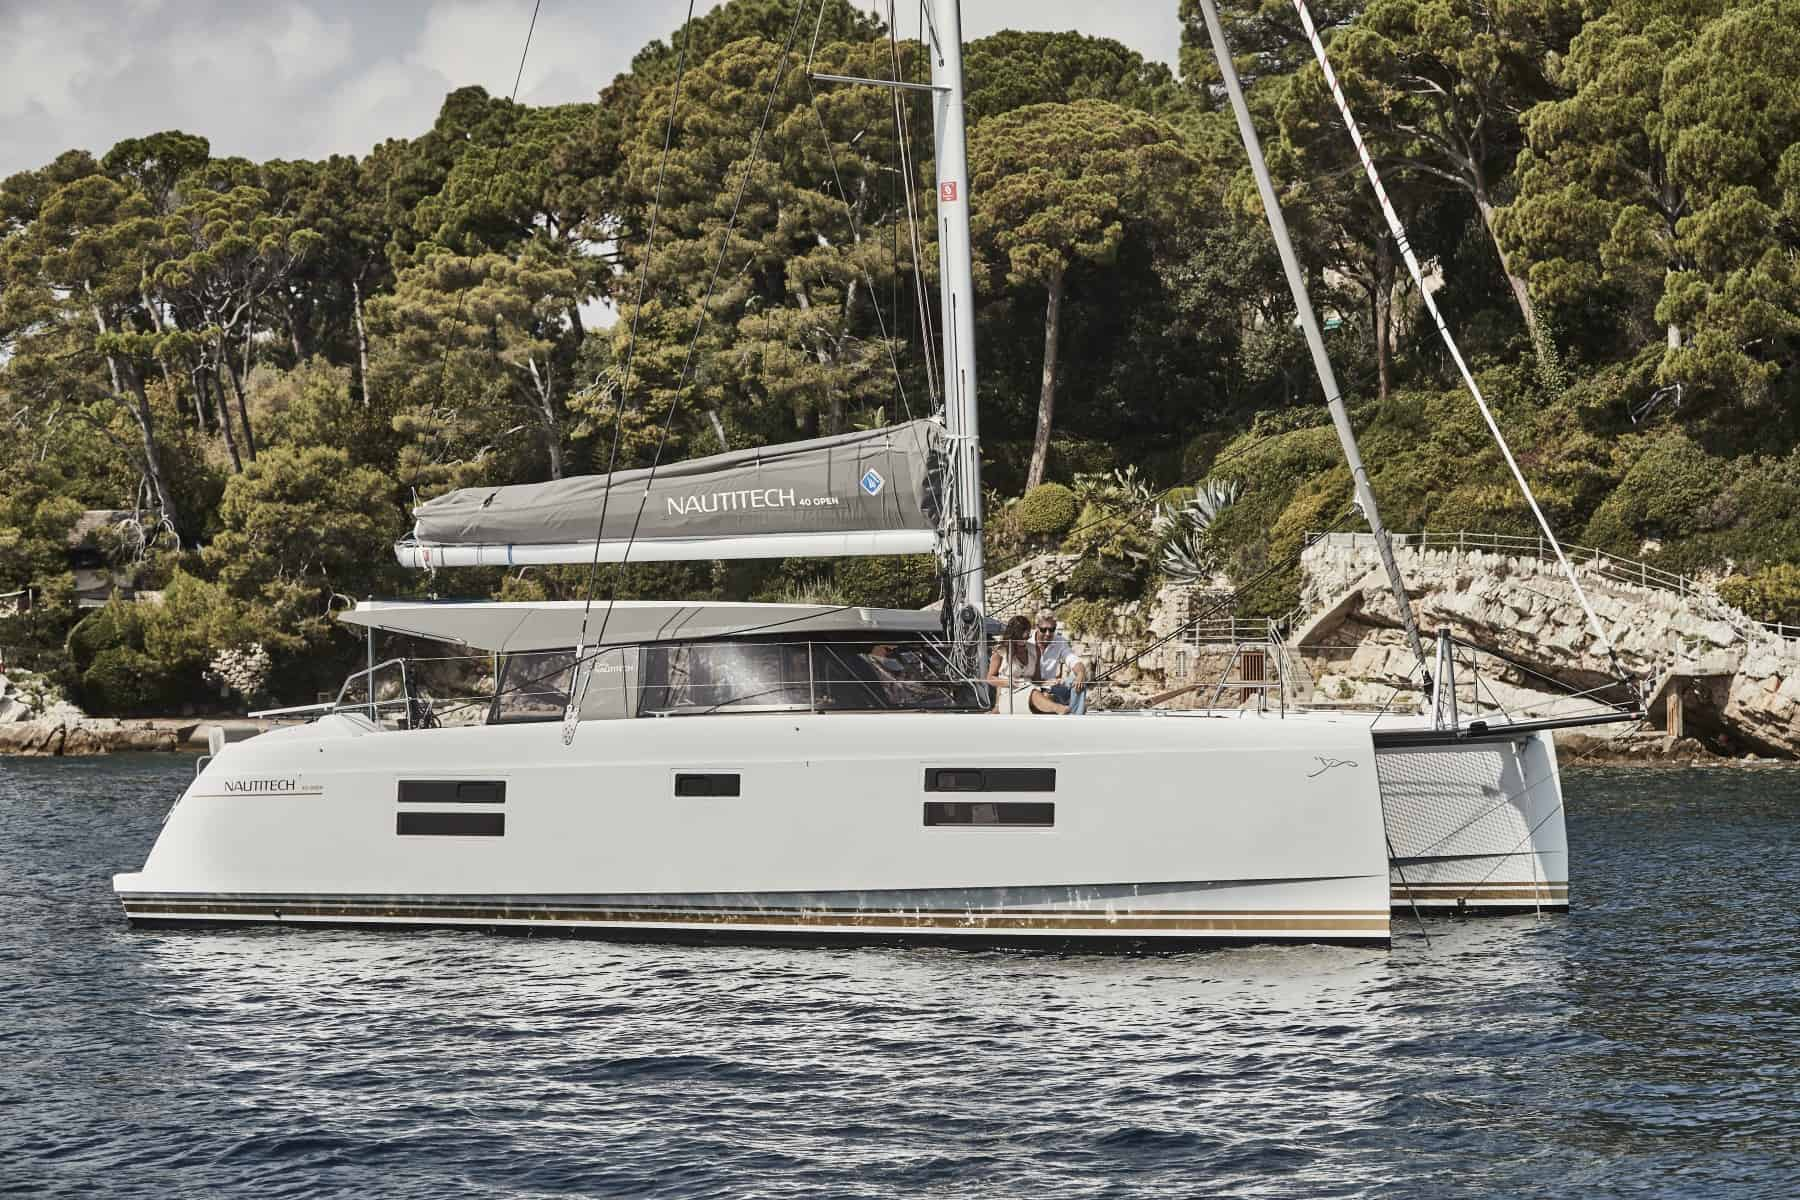 Bavaria-Nautitech-40-open-exterior-2-charter-ownership-yacht